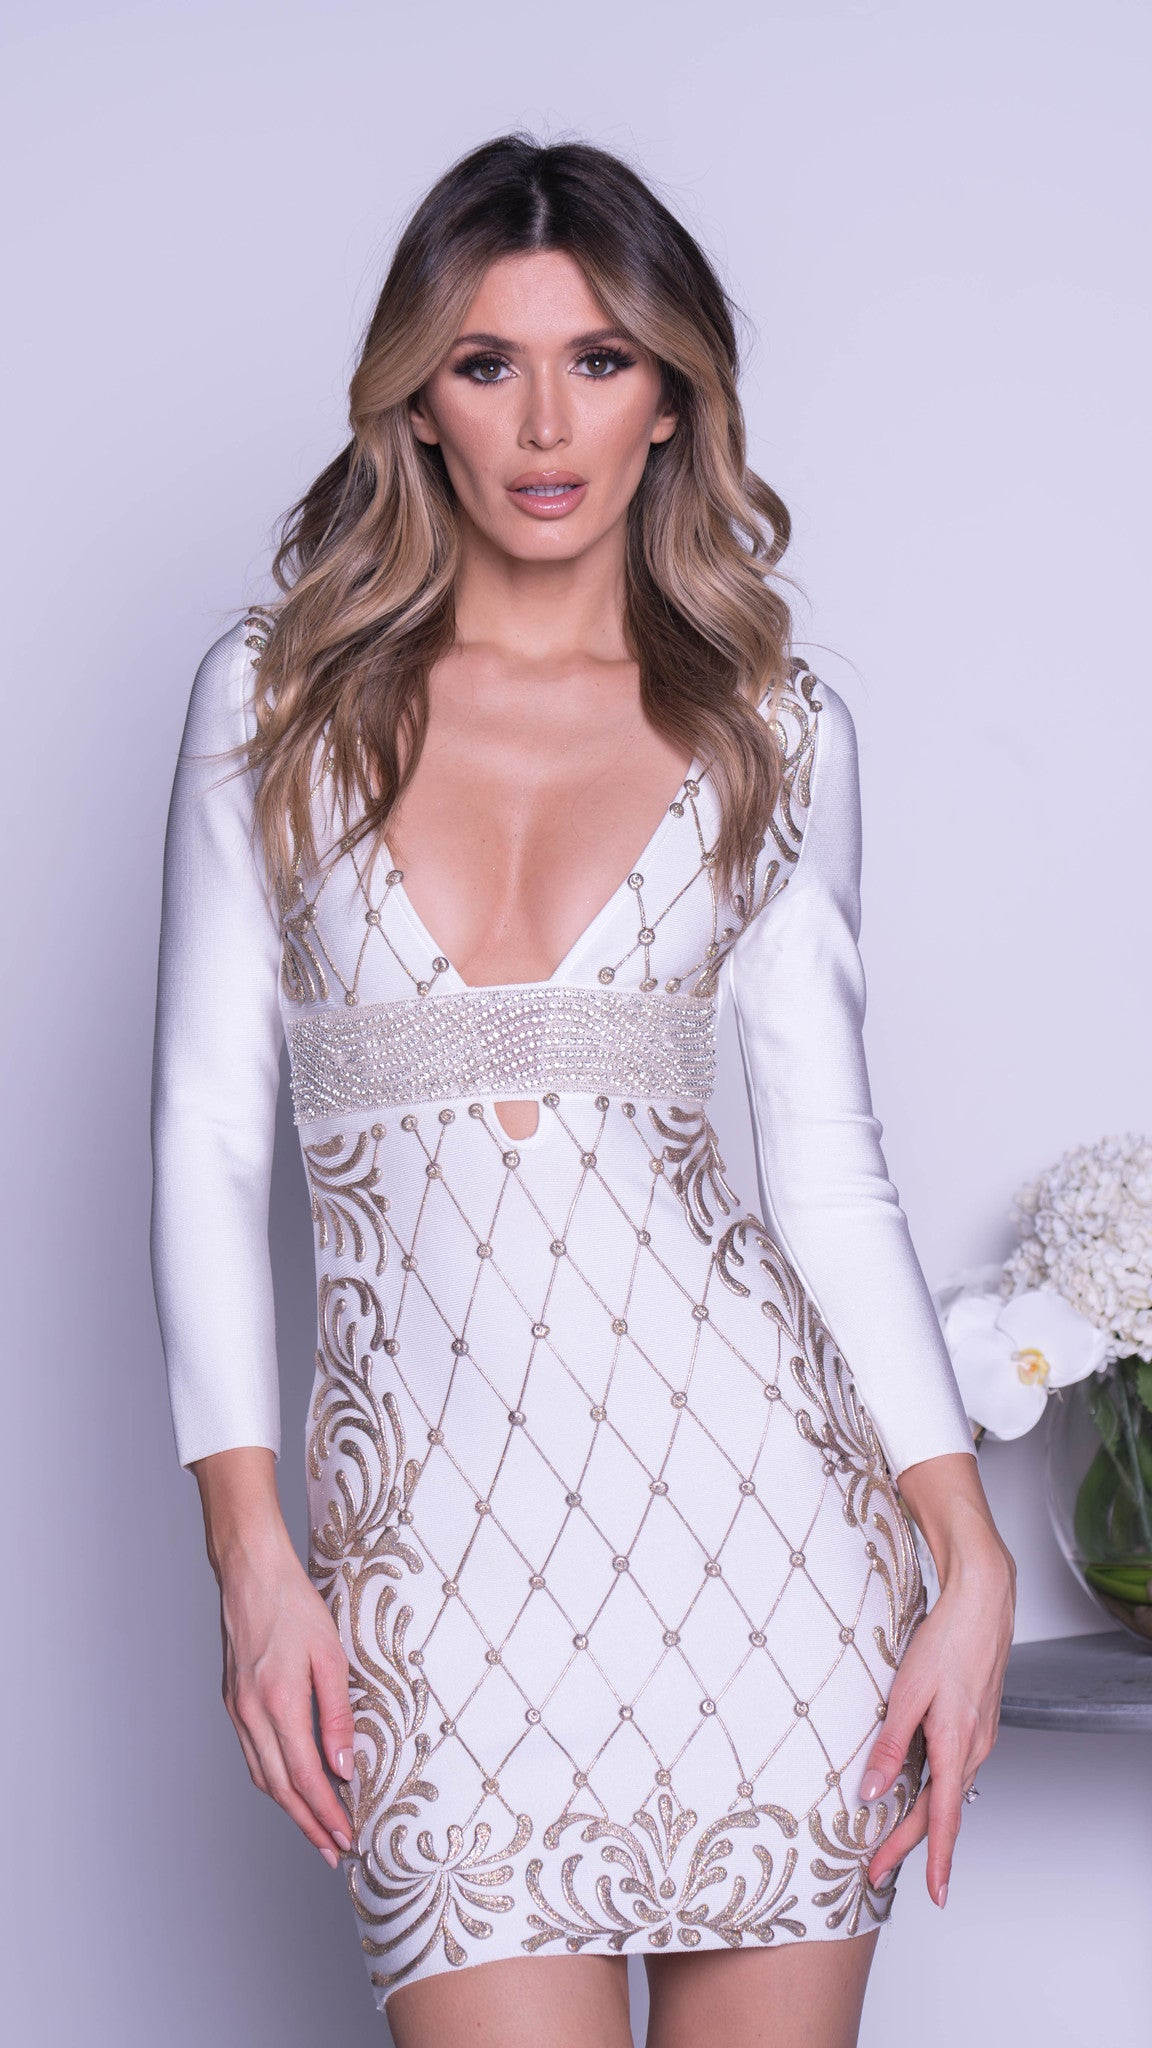 SIMAL PAINTED BANDAGE DRESS IN WHITE WITH GOLD